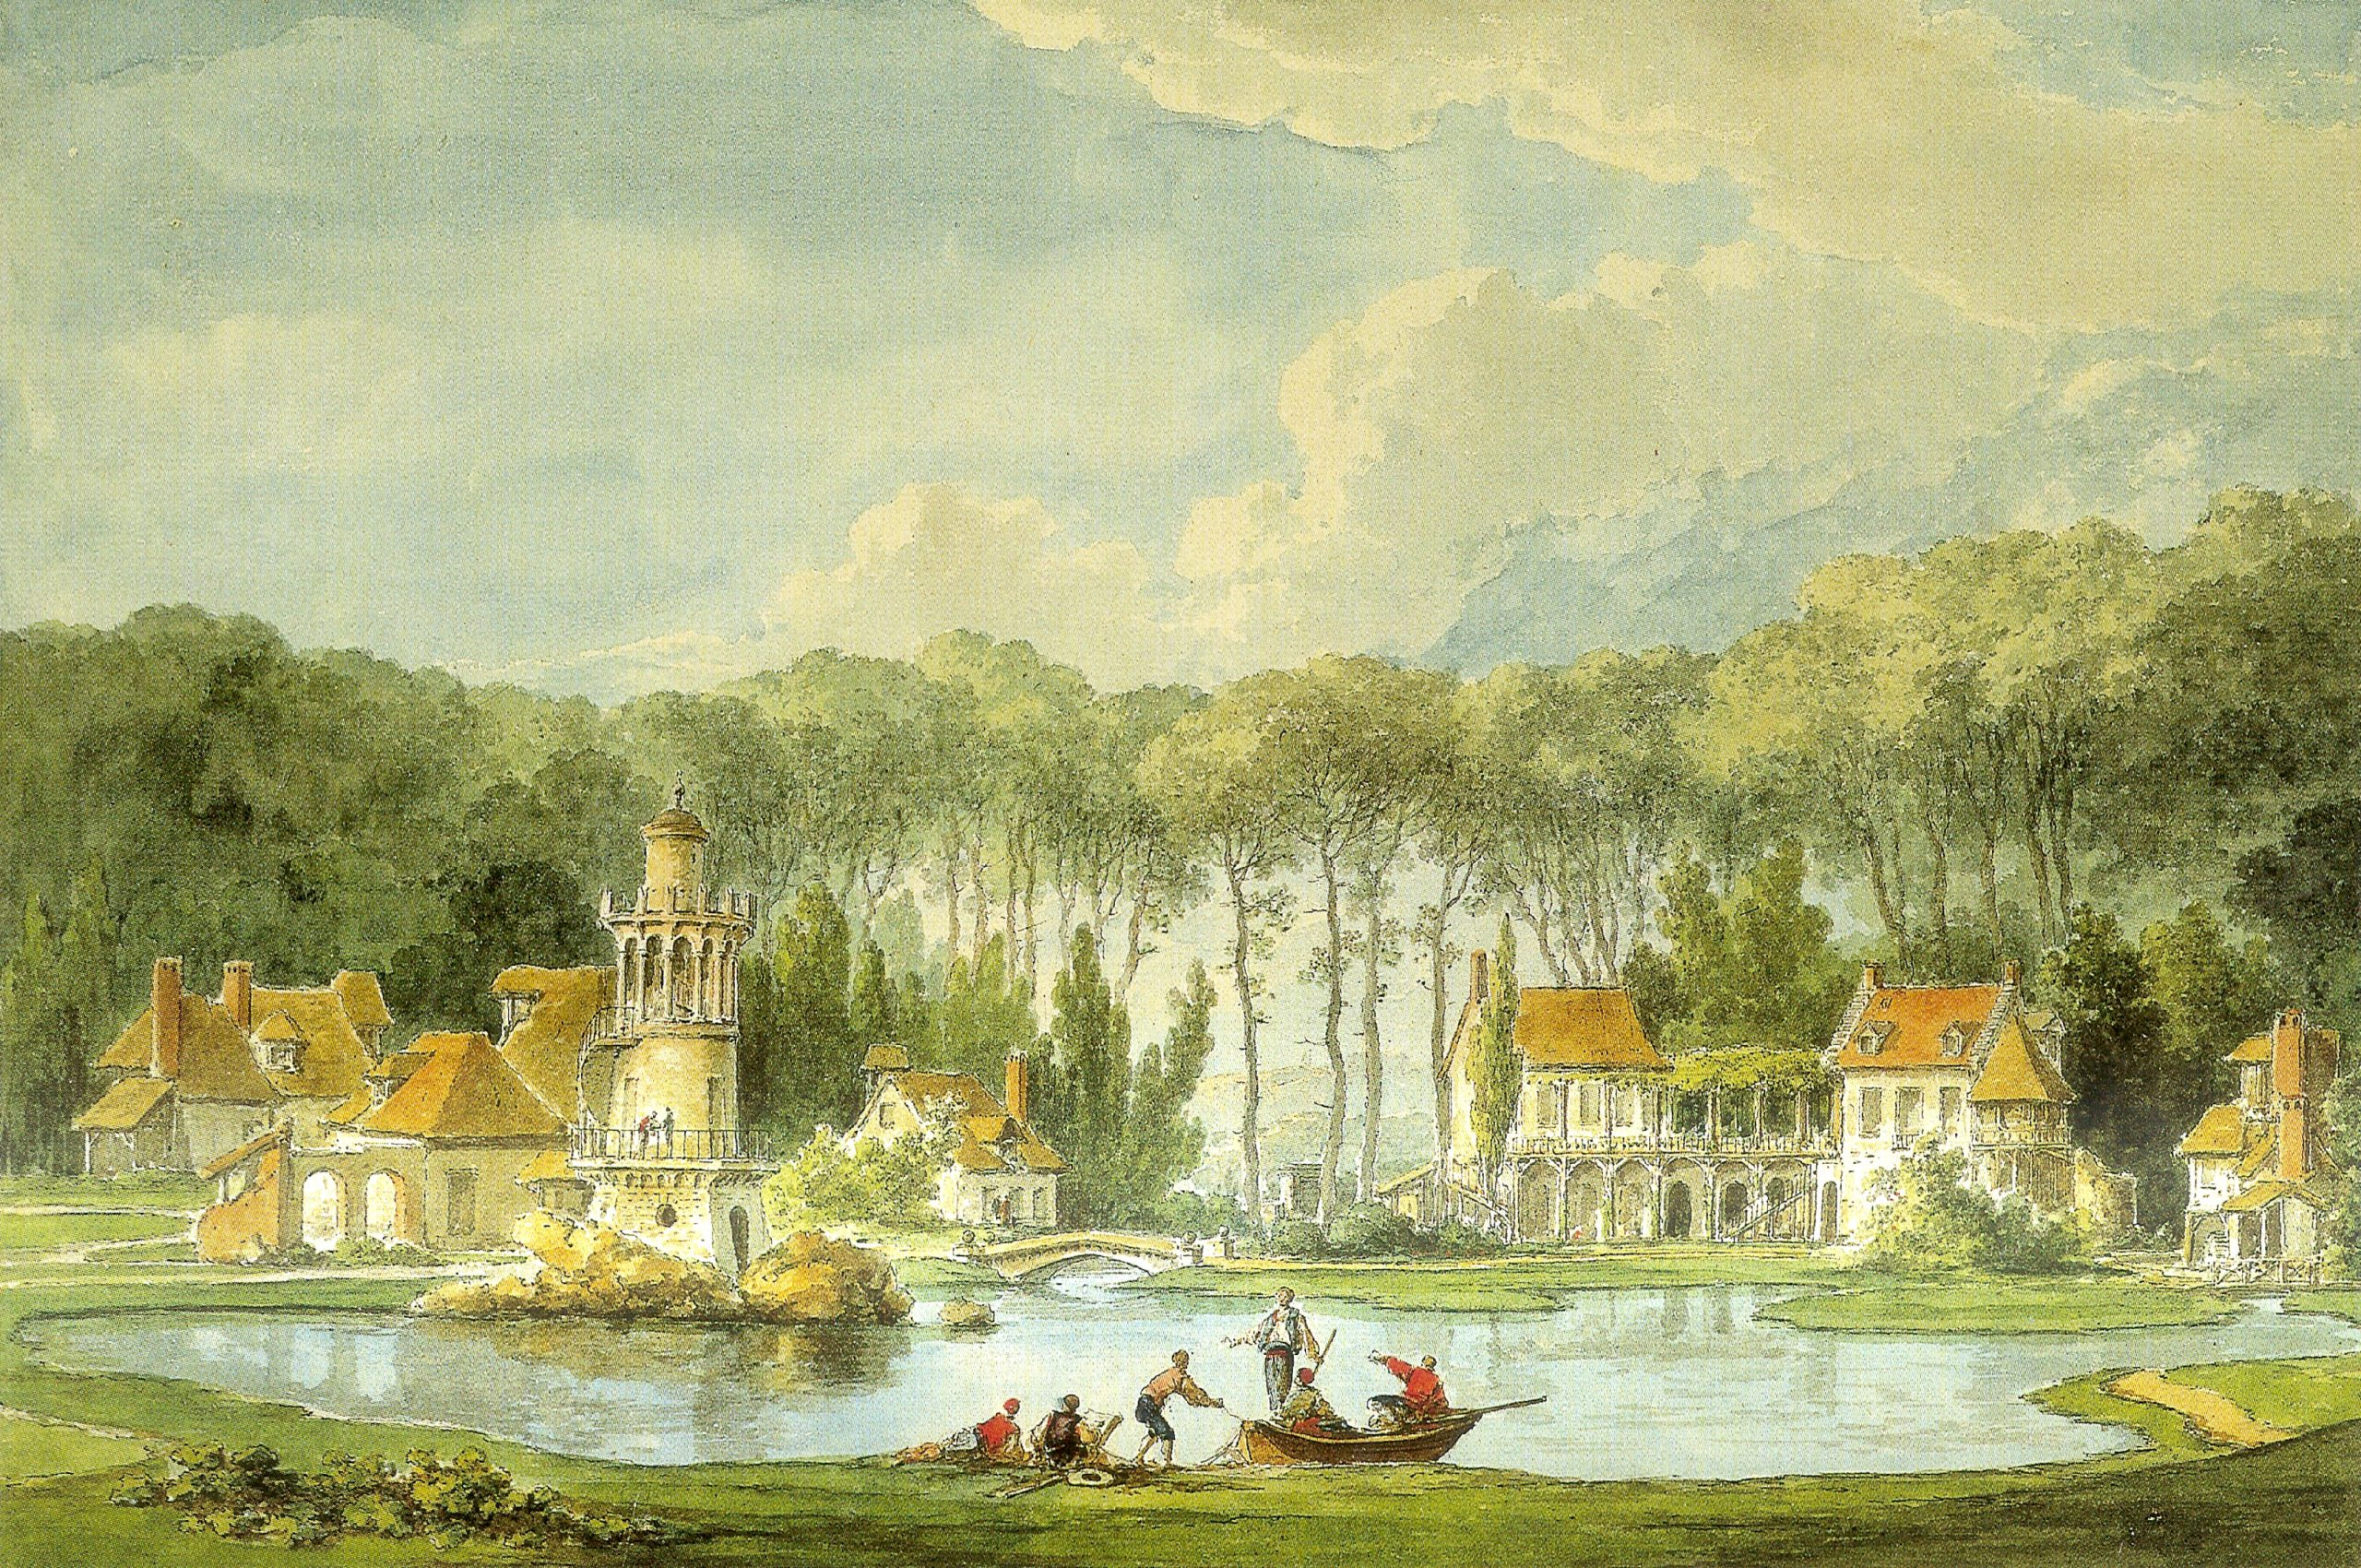 A photograph of Claude-Louis Châtelet's The Hameau, Petit Trianon, an aquarelle painting depicting the artificial 'hamlet' built for Marie Antoinette to satisfy her 'cottagecore' whims